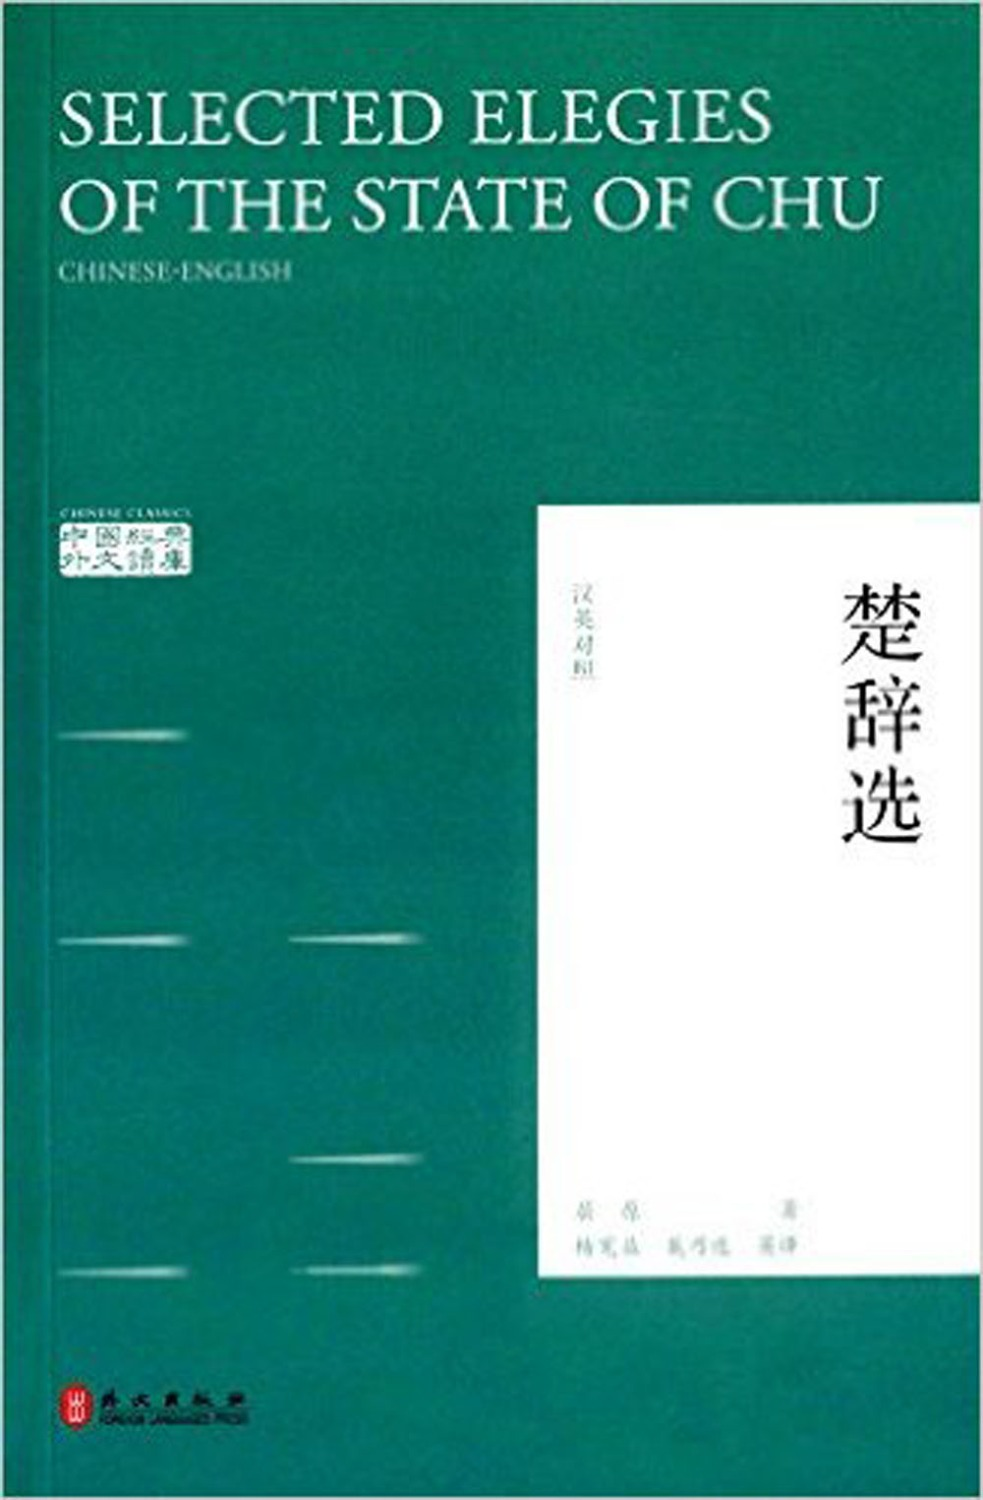 Chines Selected Elegies of the State of Chu (Chinese-English)- bilingual